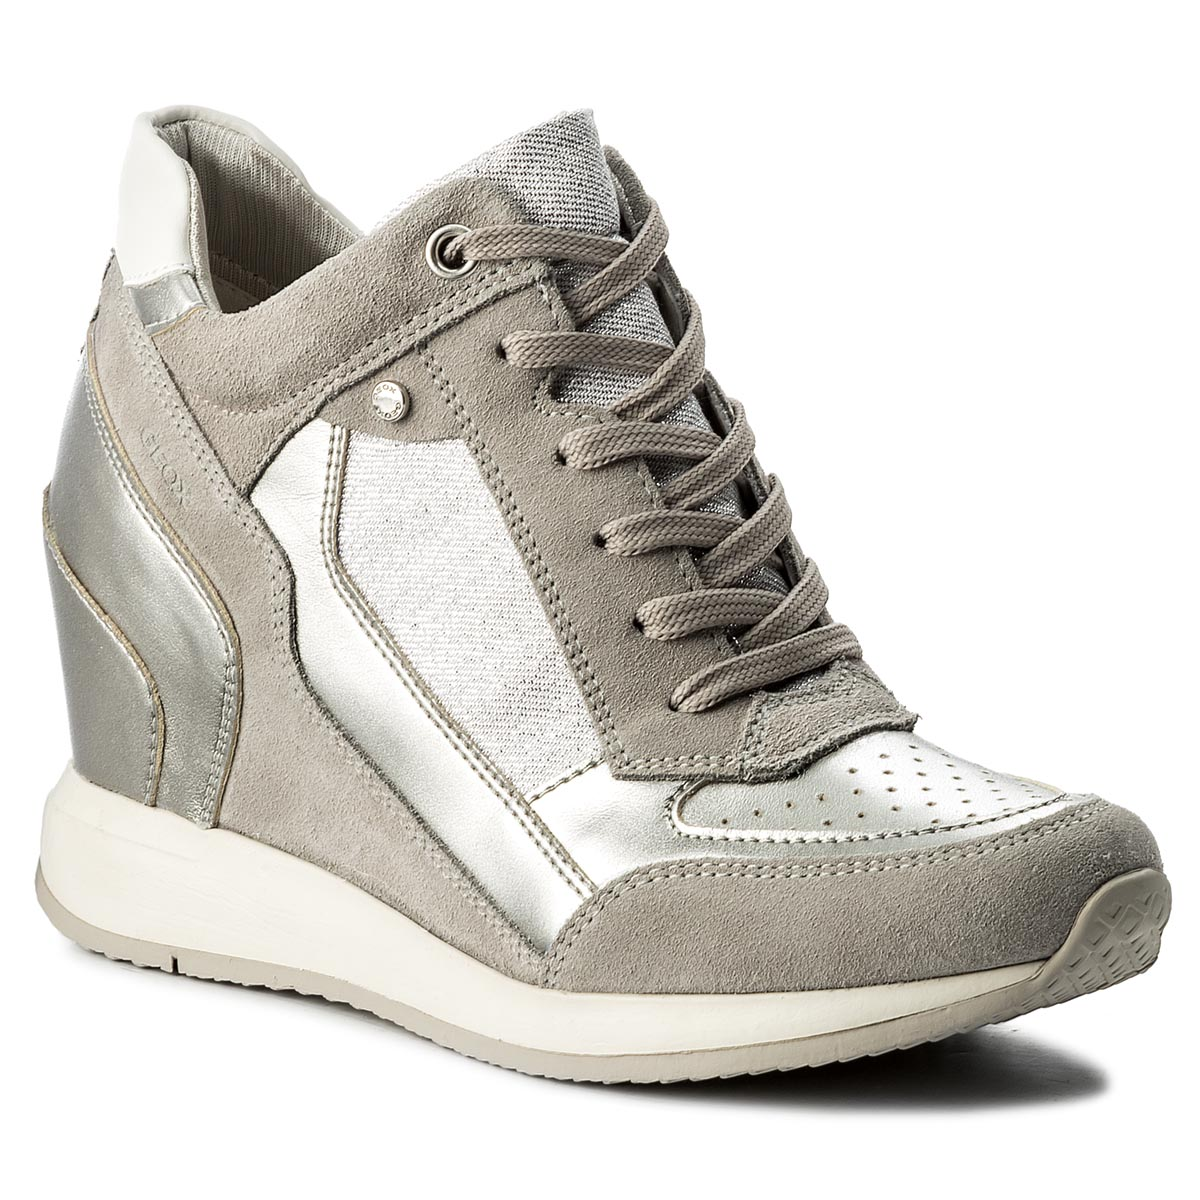 Sneakersy GEOX - D Nydame A D540QA 022AS C1355 Lt Grey/Silver